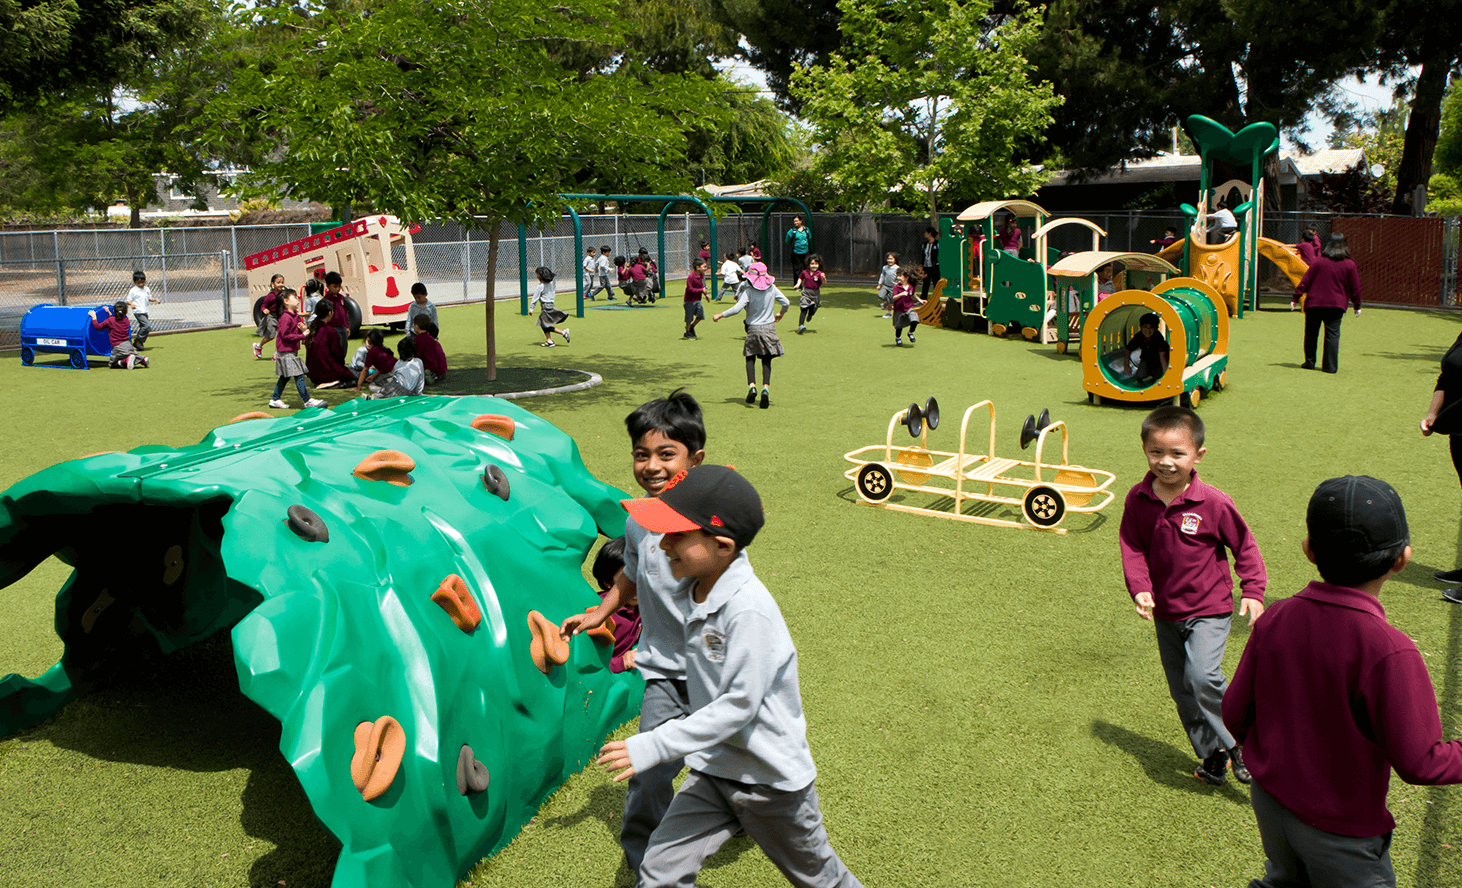 Elementary School Playground | Challenger School - Sunnyvale | Private School In Sunnyvale, California